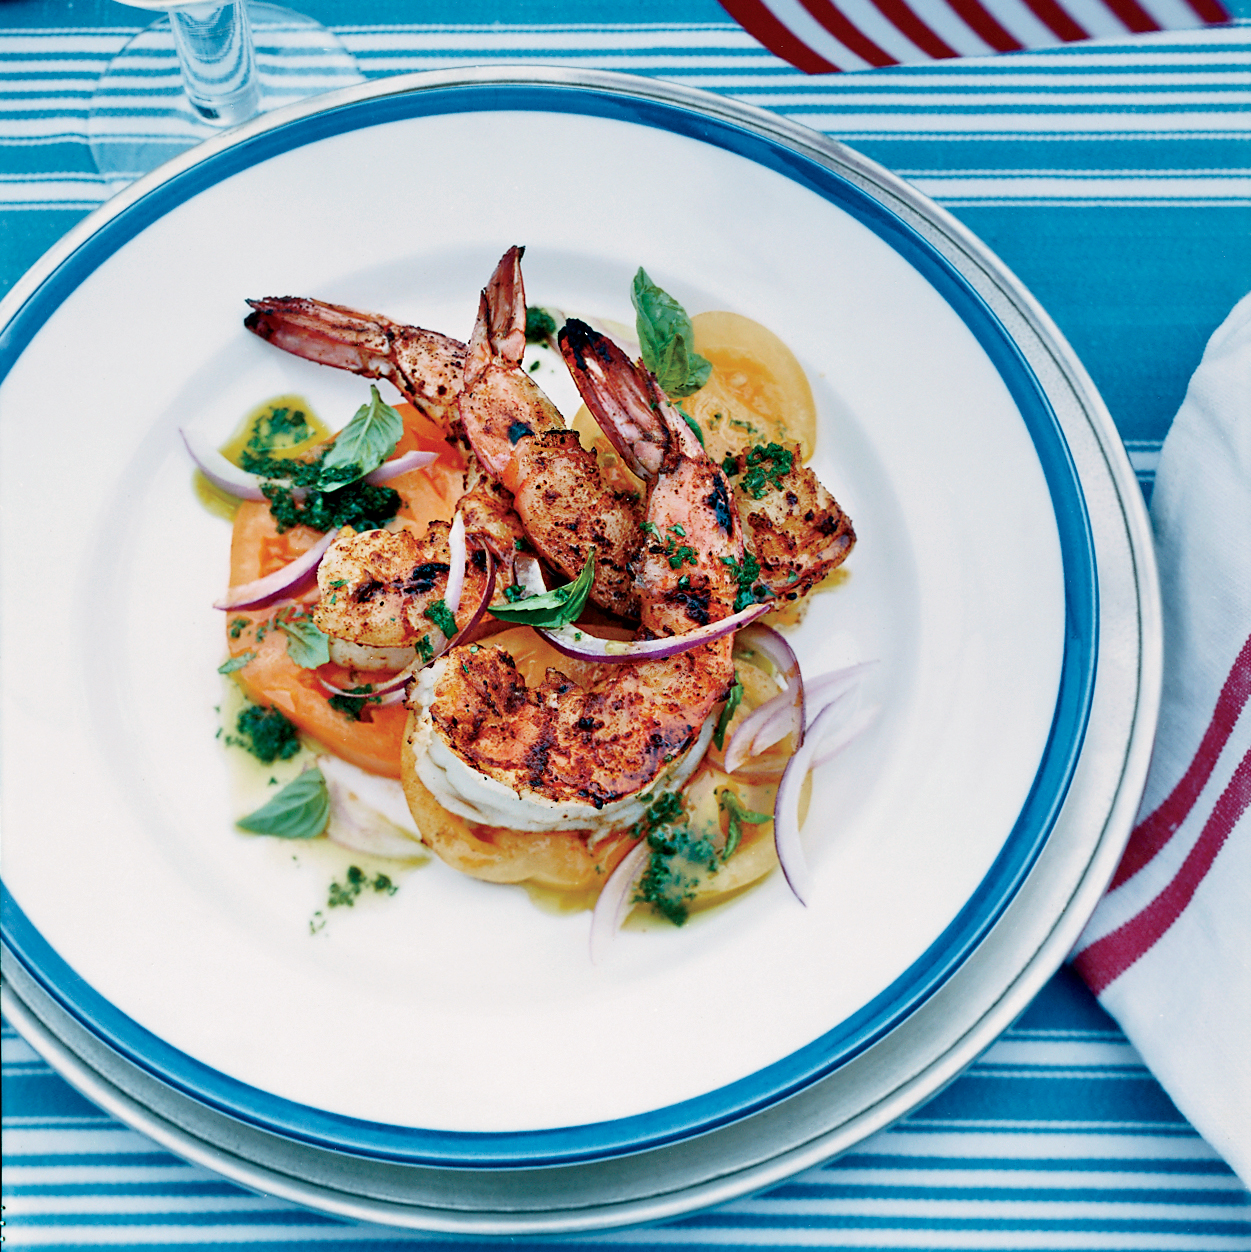 Barbecued Spiced Shrimp With Tomato Salad Recipe Bobby